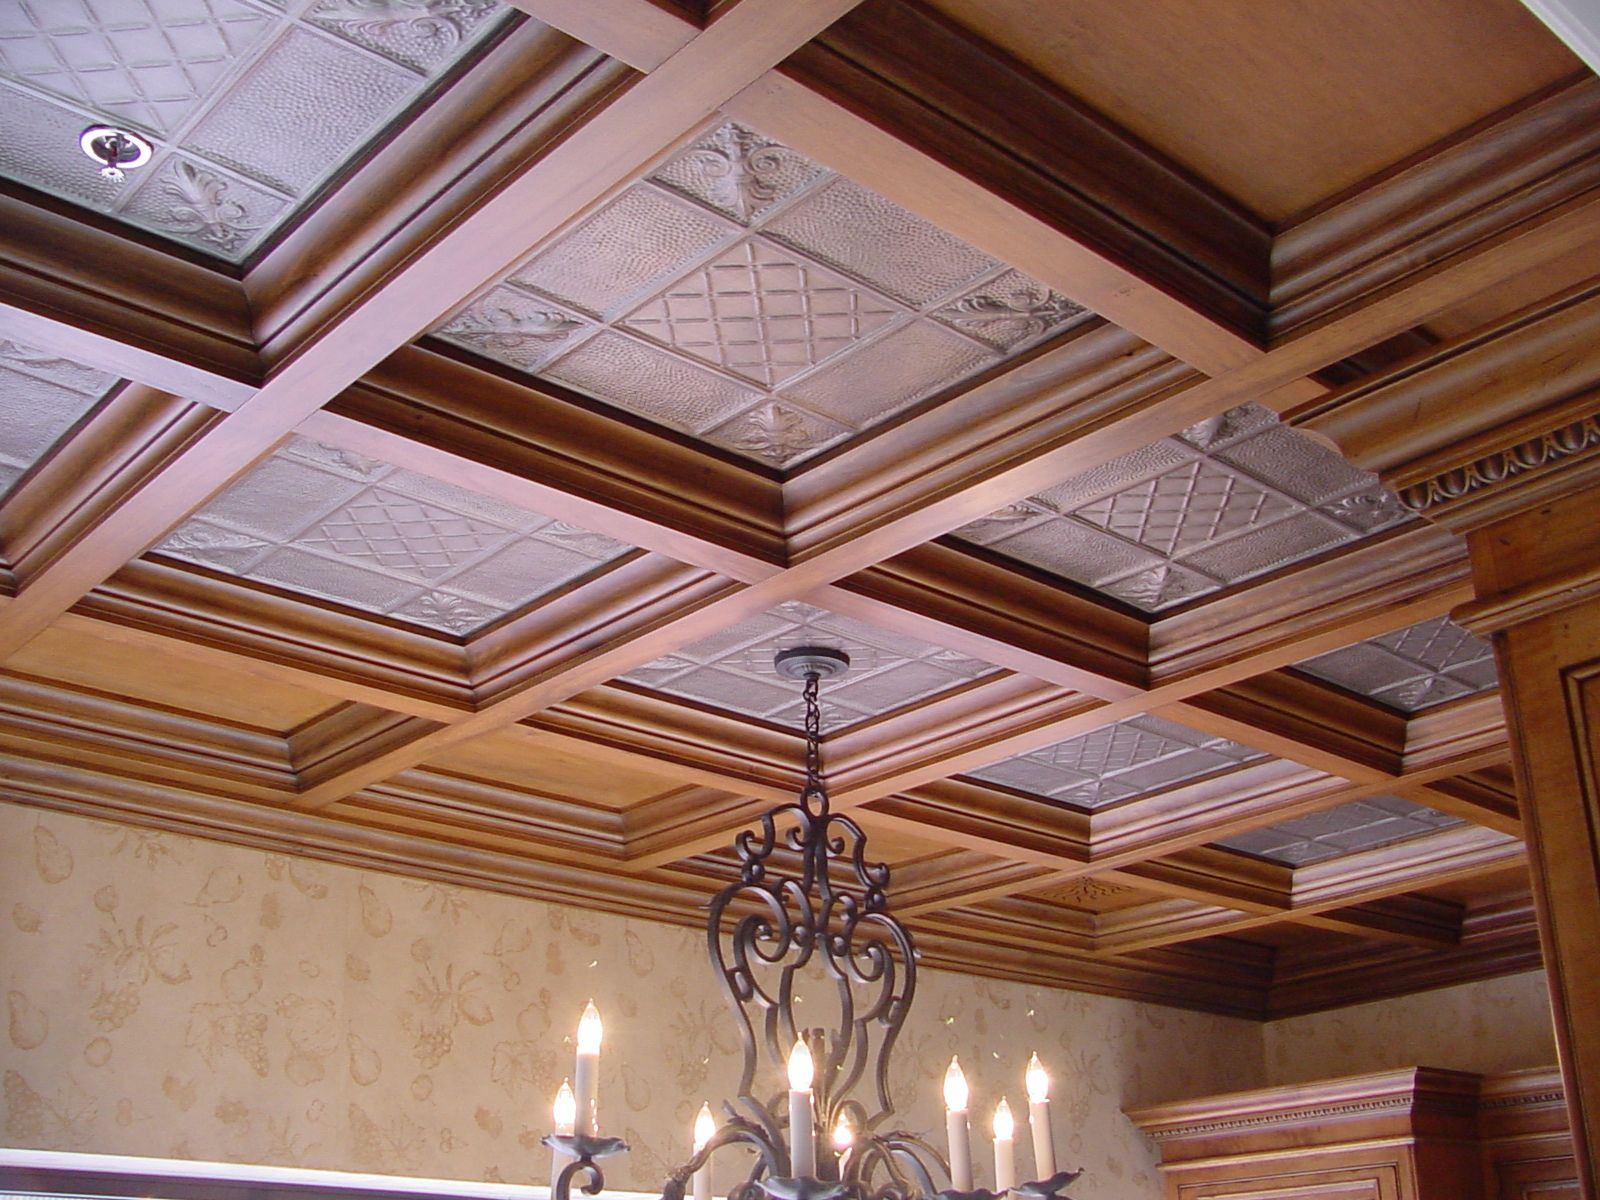 27 Amazing Coffered Ceiling Ideas For Any Room | Ceilings, Ceiling ...